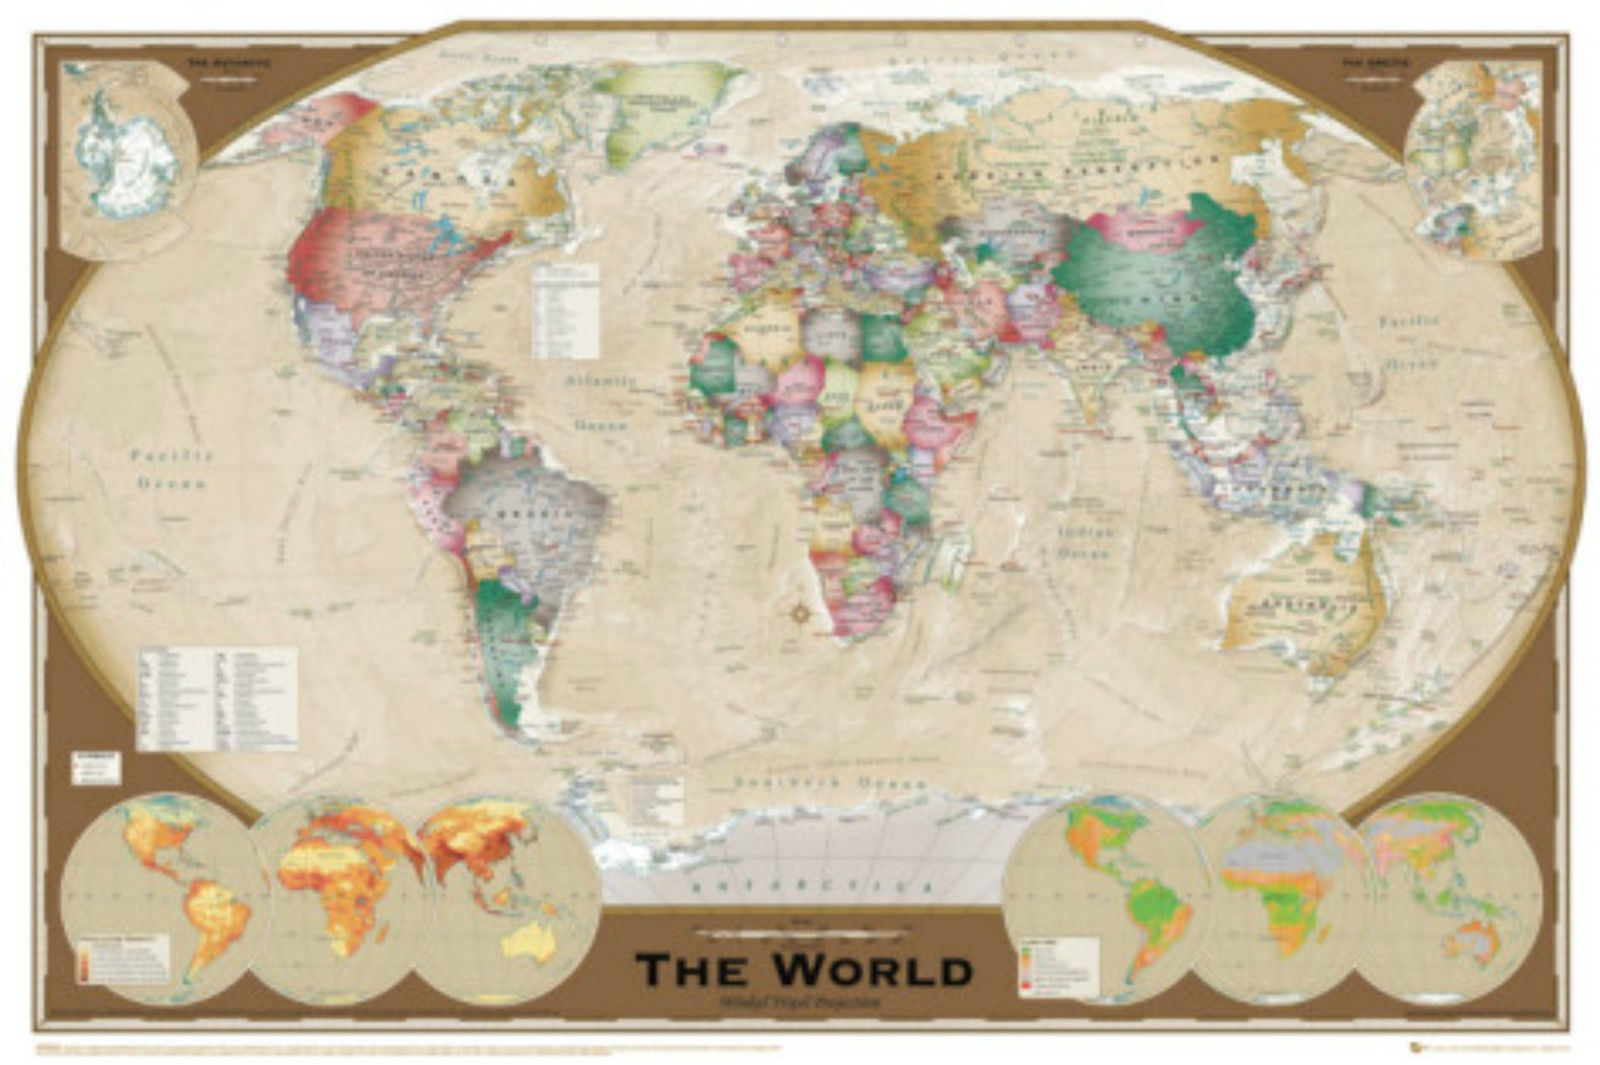 91.5X61cm World Map Vintage Style Poster Print 36X24